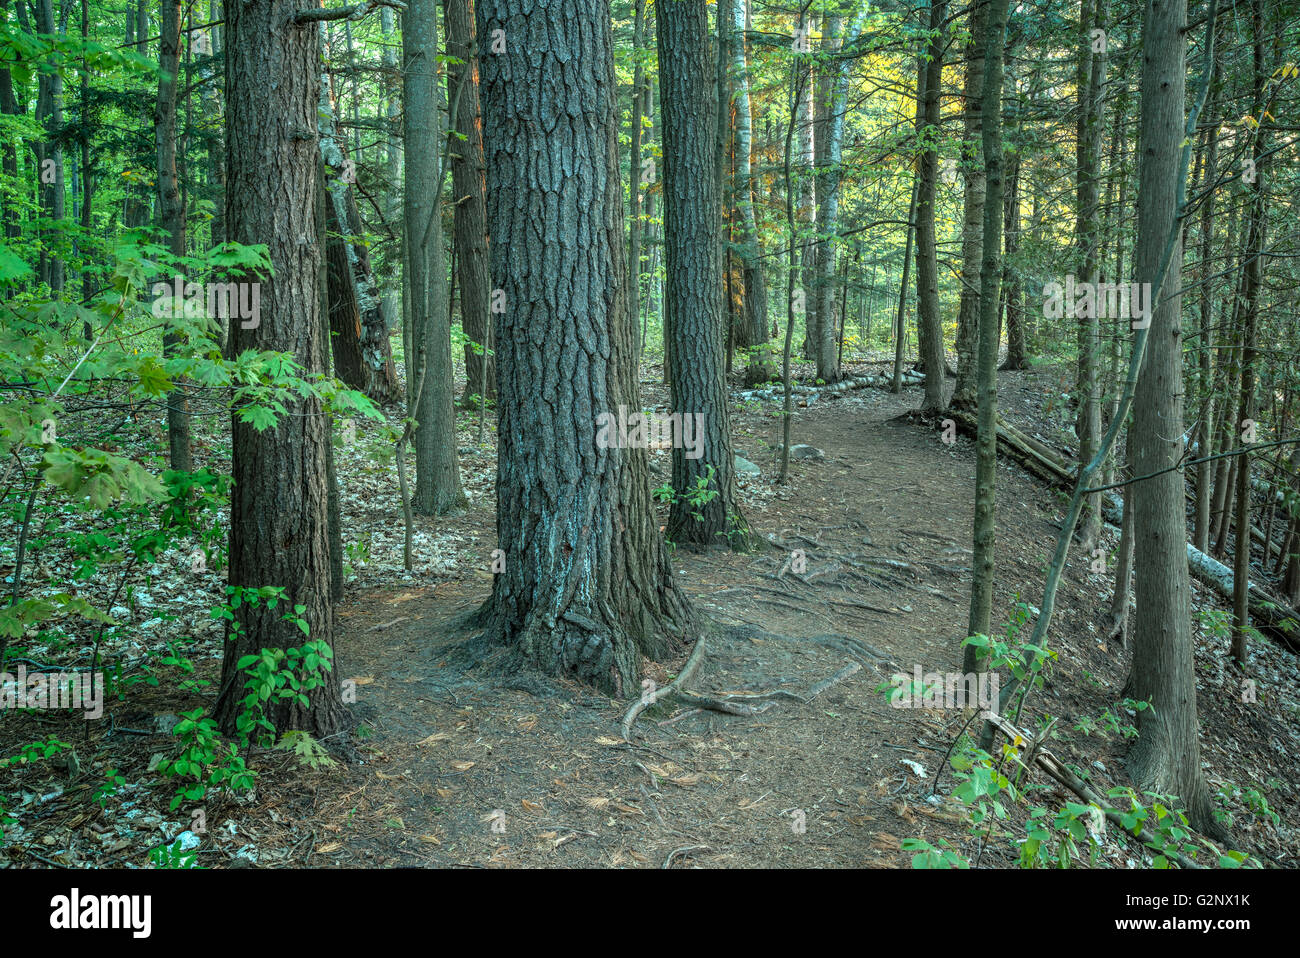 Hiking Trail in a Forest - Stock Image